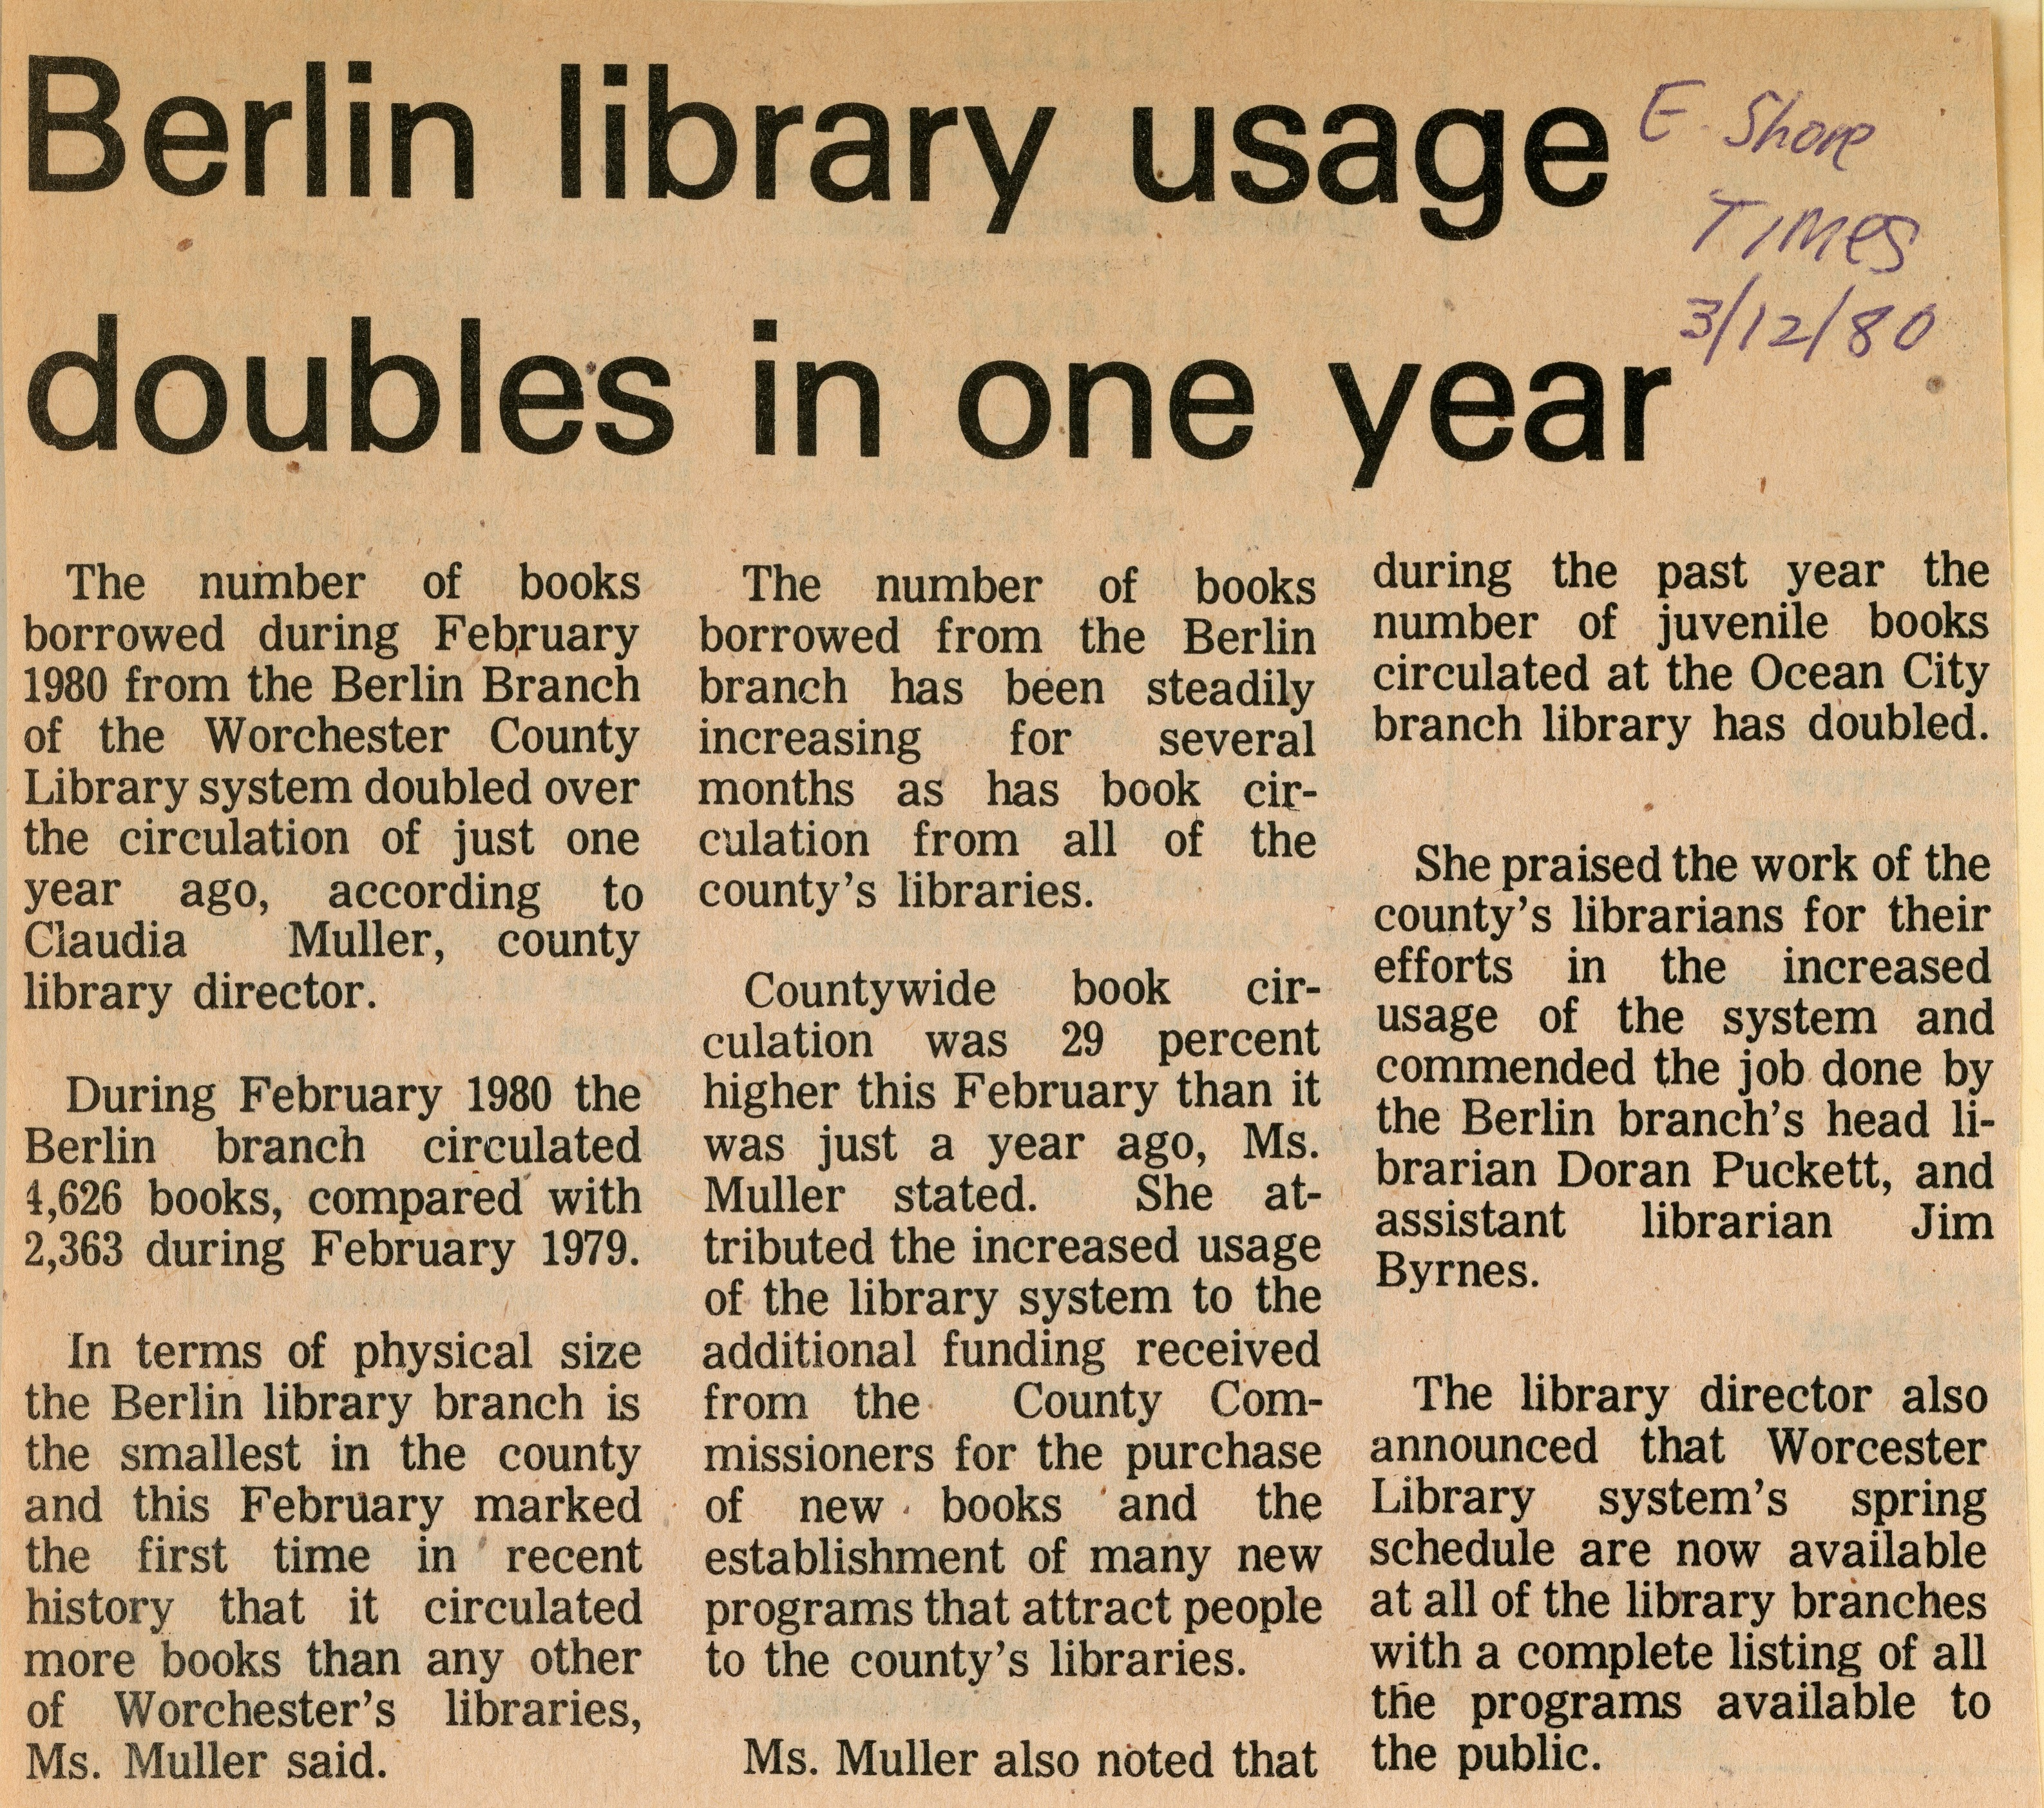 Berlin Library Usage Doubles